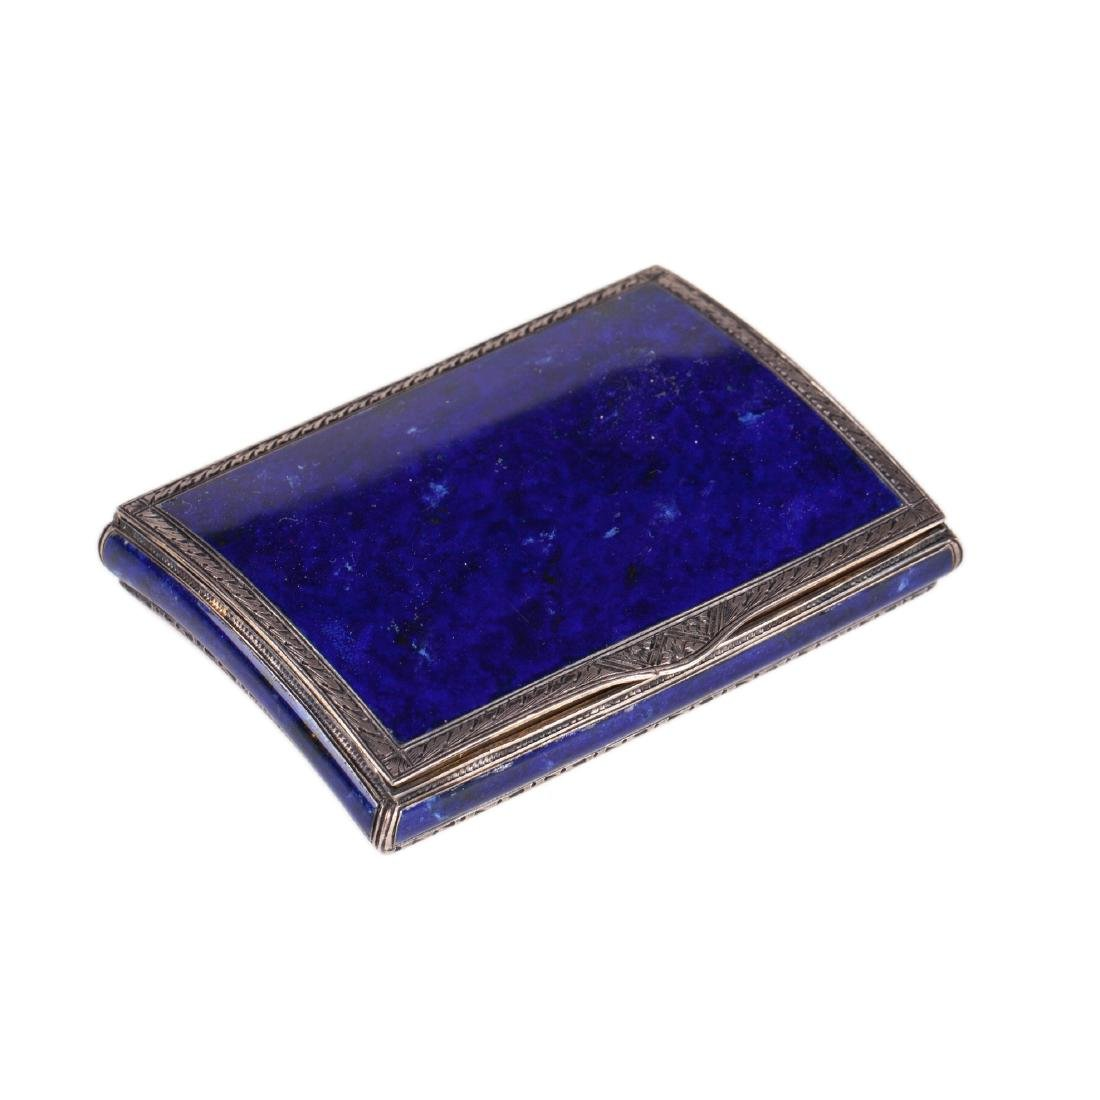 Antique silver and electric blue guilloche enamel box